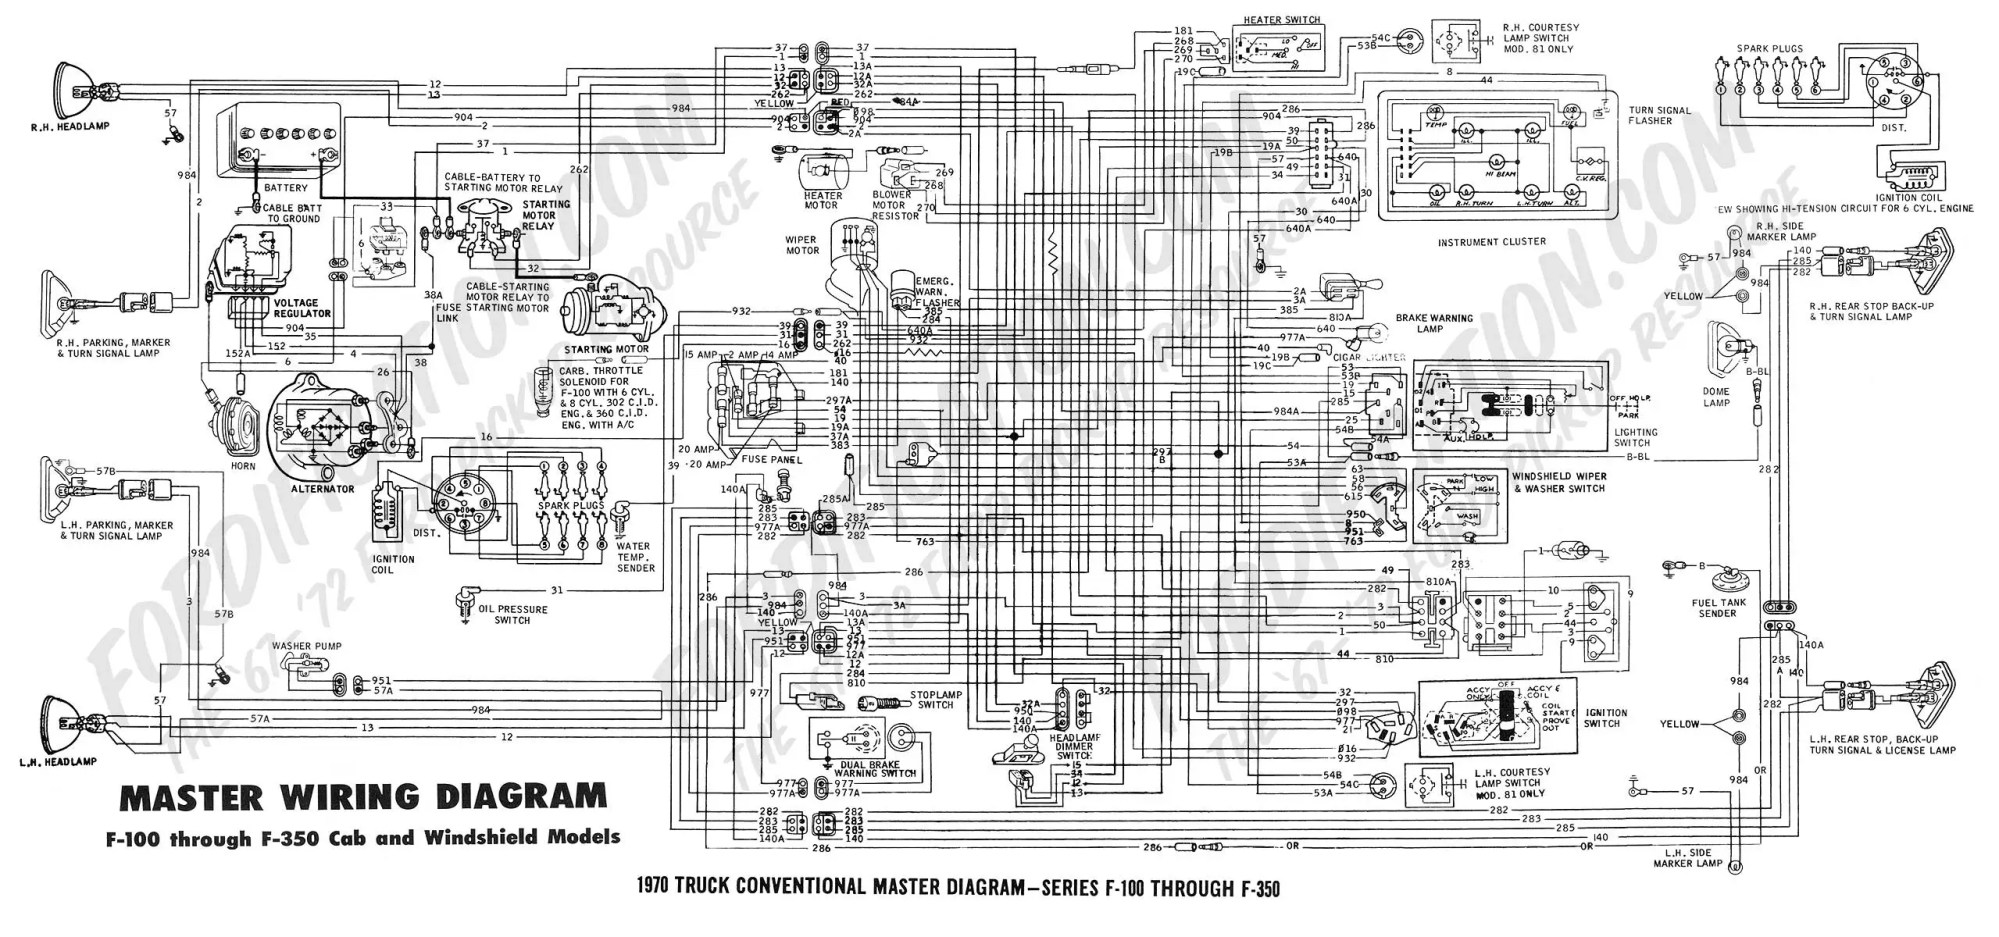 hight resolution of ford wire diagram wiring diagram world ford wire diagram schema wiring diagram ford pats wiring diagram